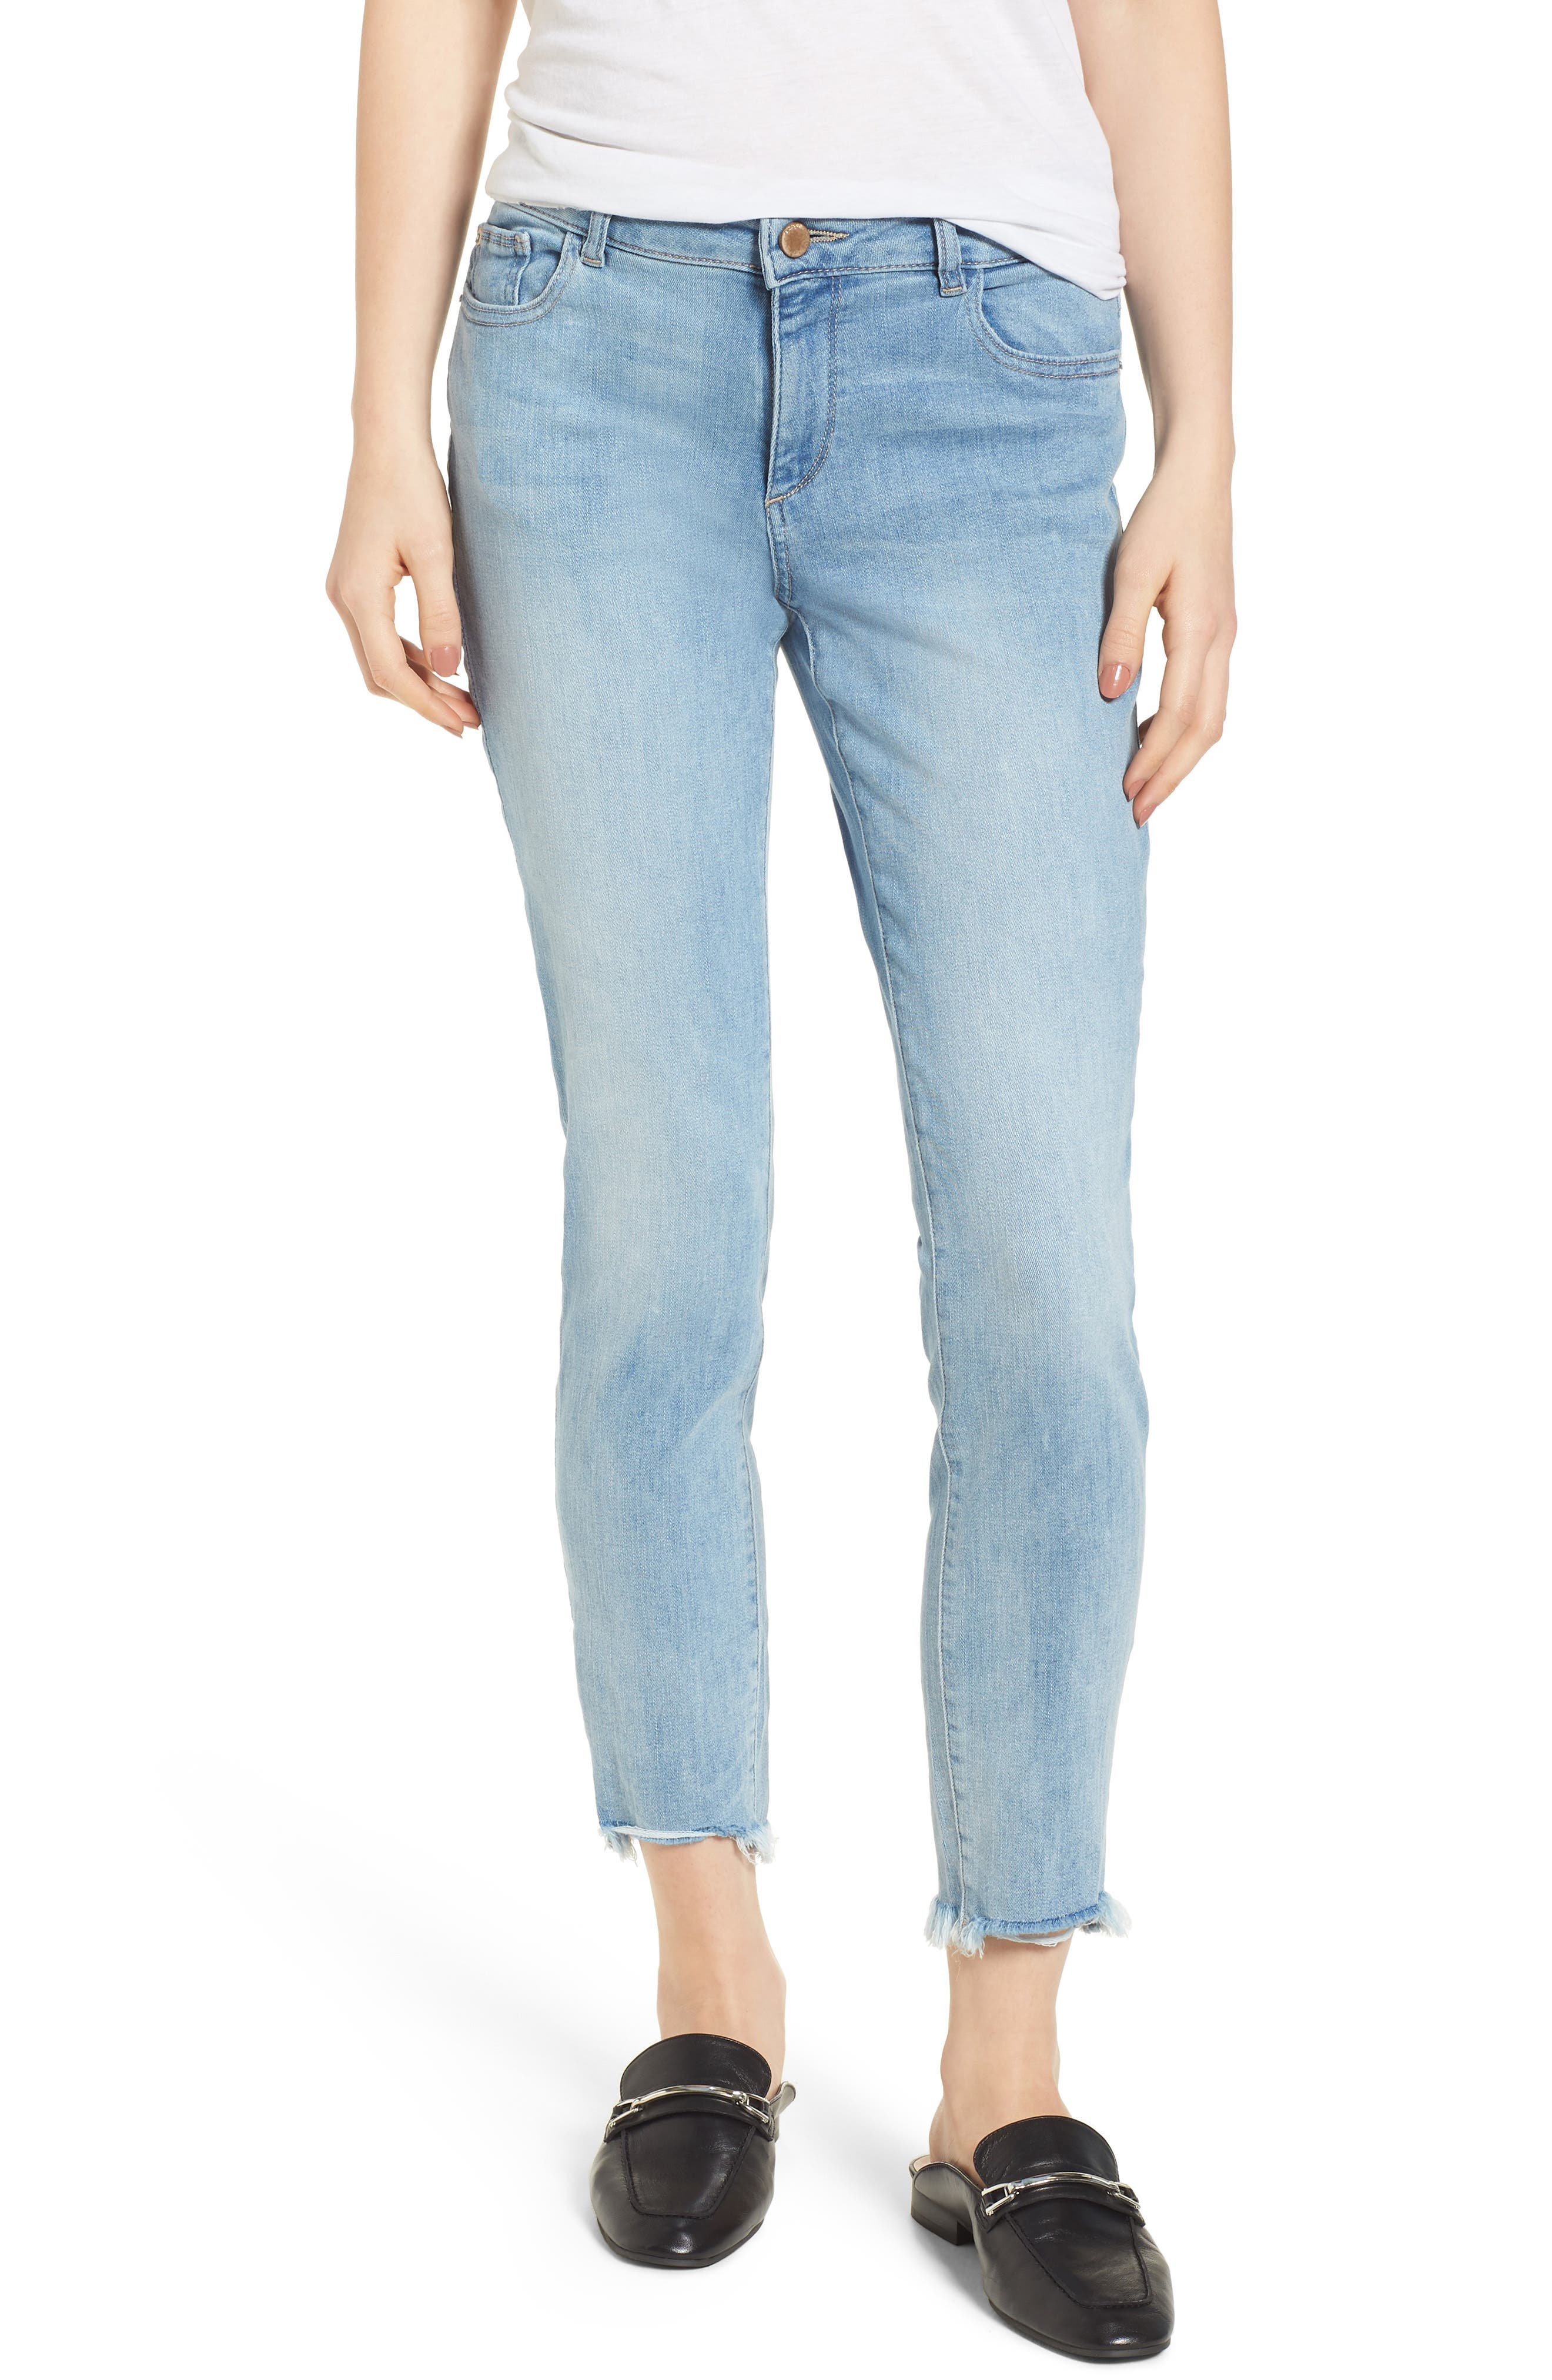 Coco Curvy Ankle Skinny Jeans,                             Main thumbnail 1, color,